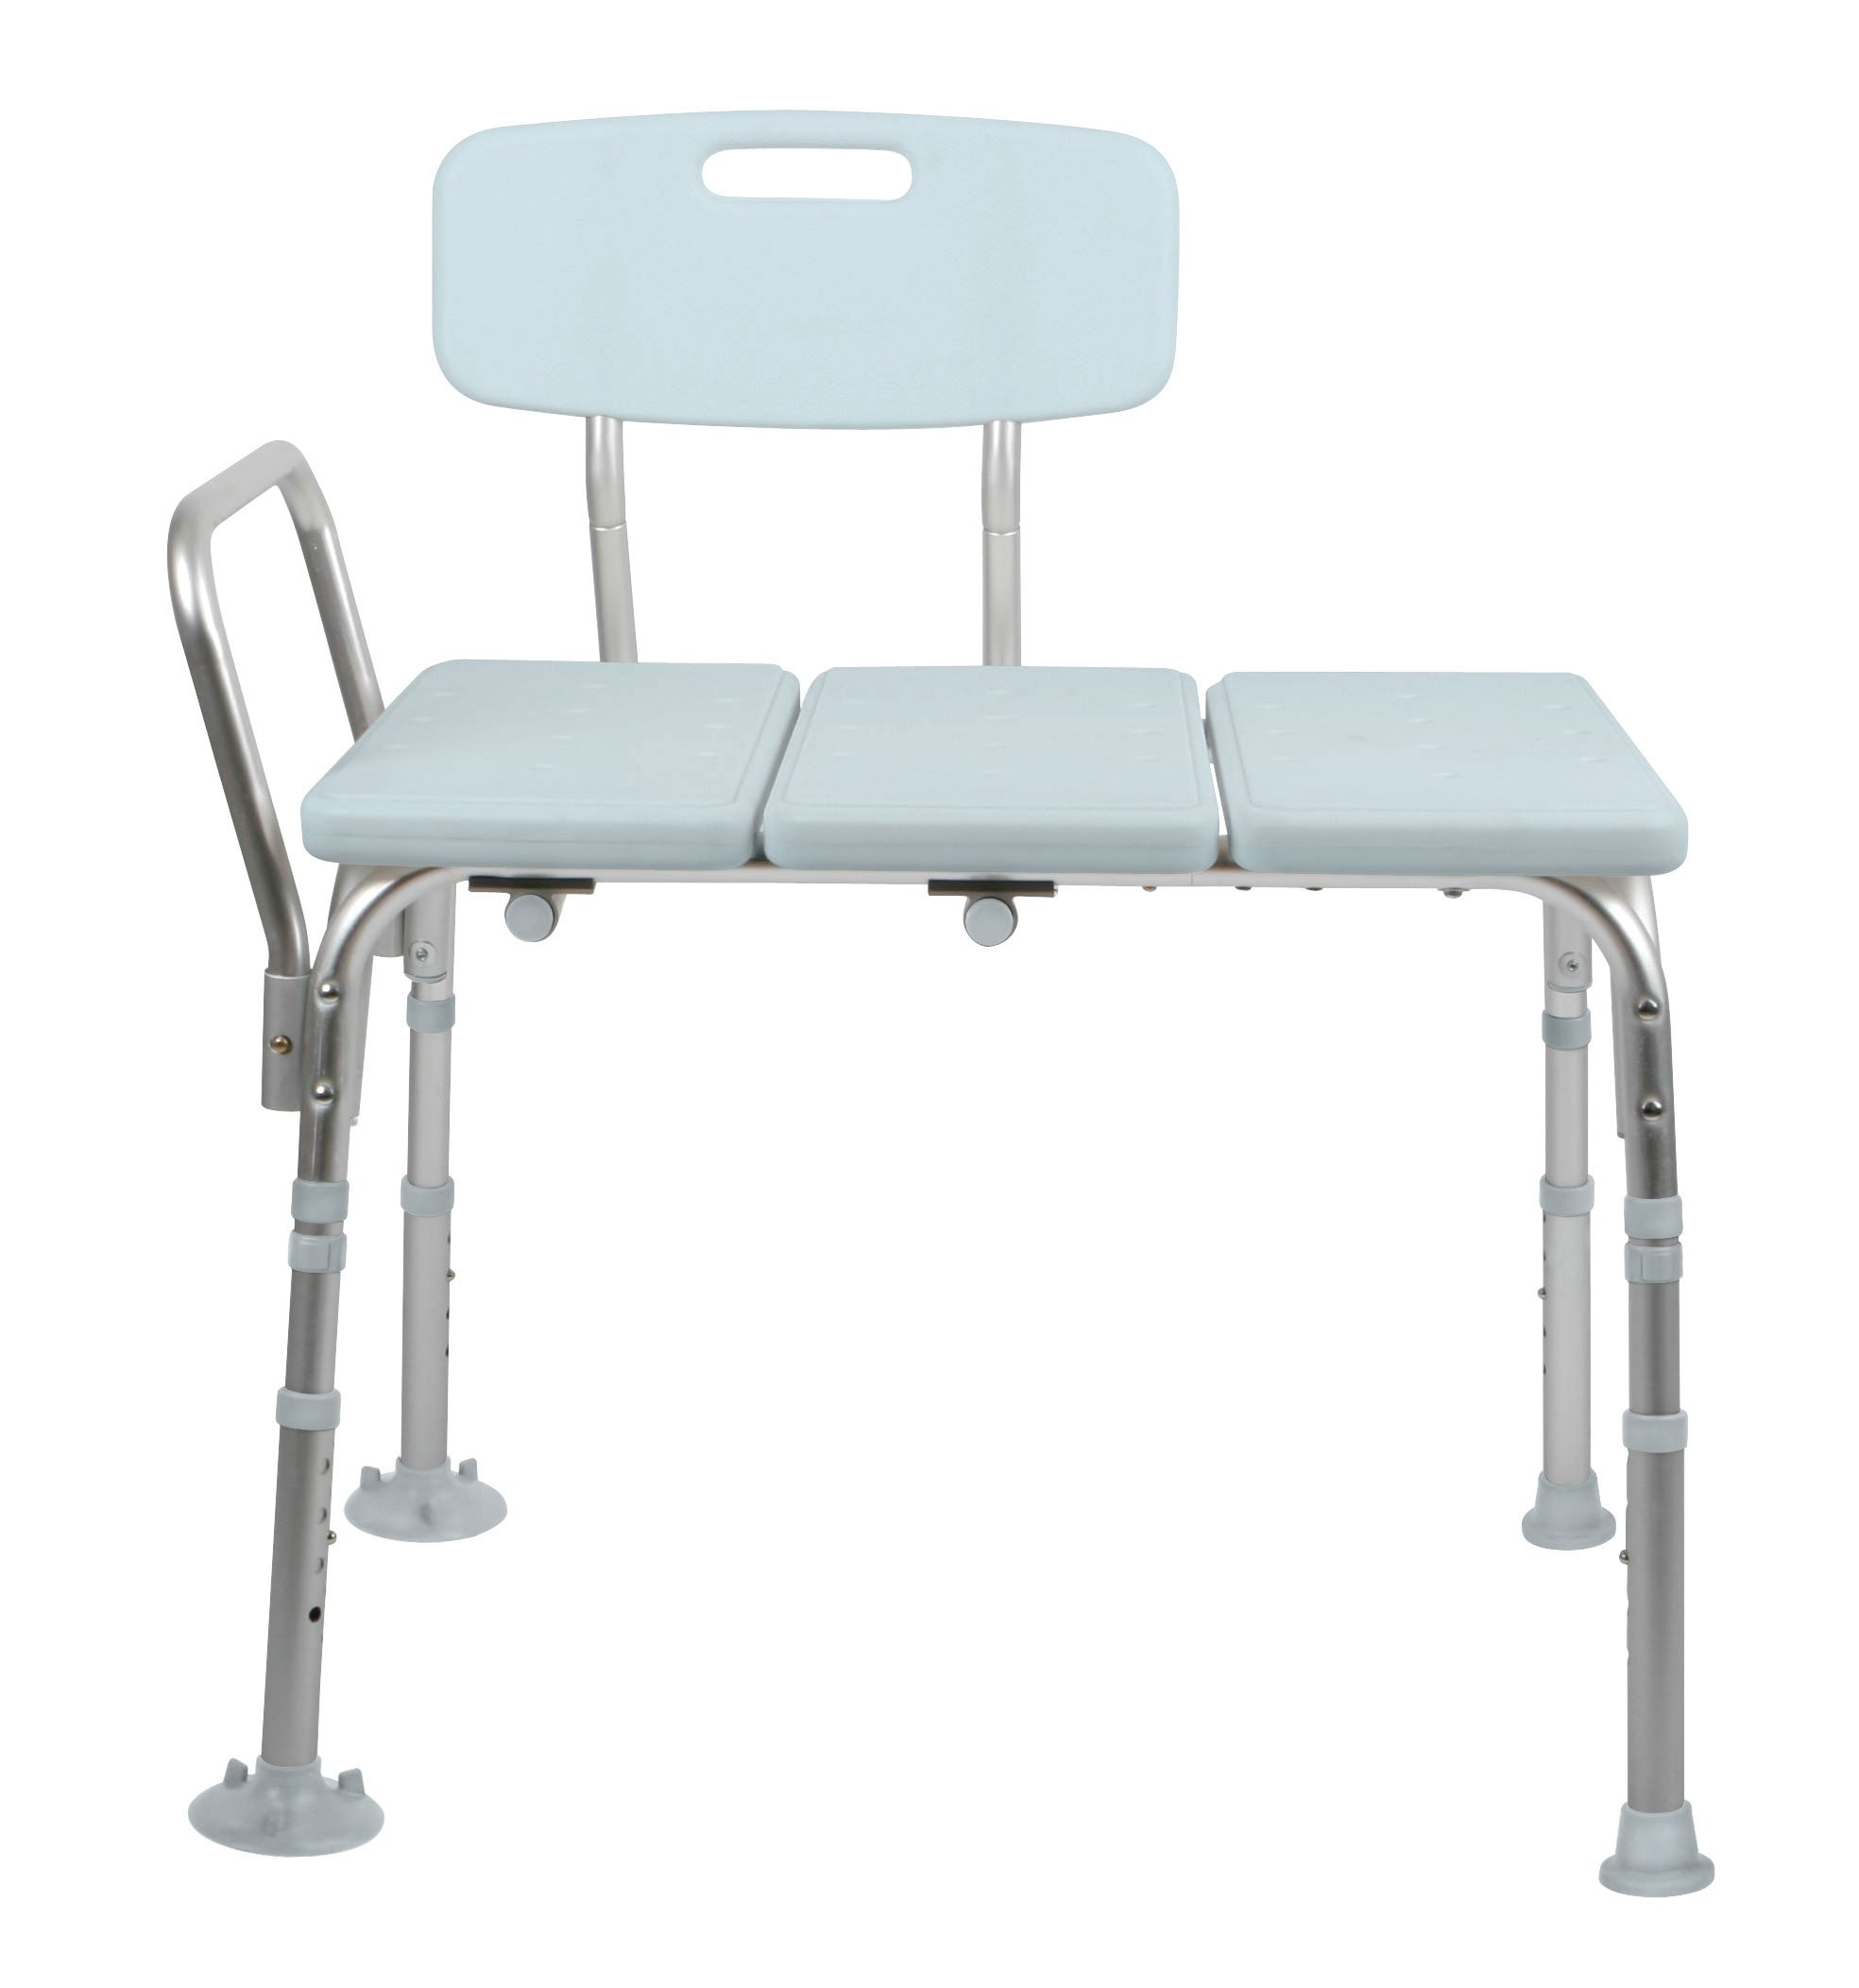 Medline Transfer Bench With Back Microban - Garden View Landscape